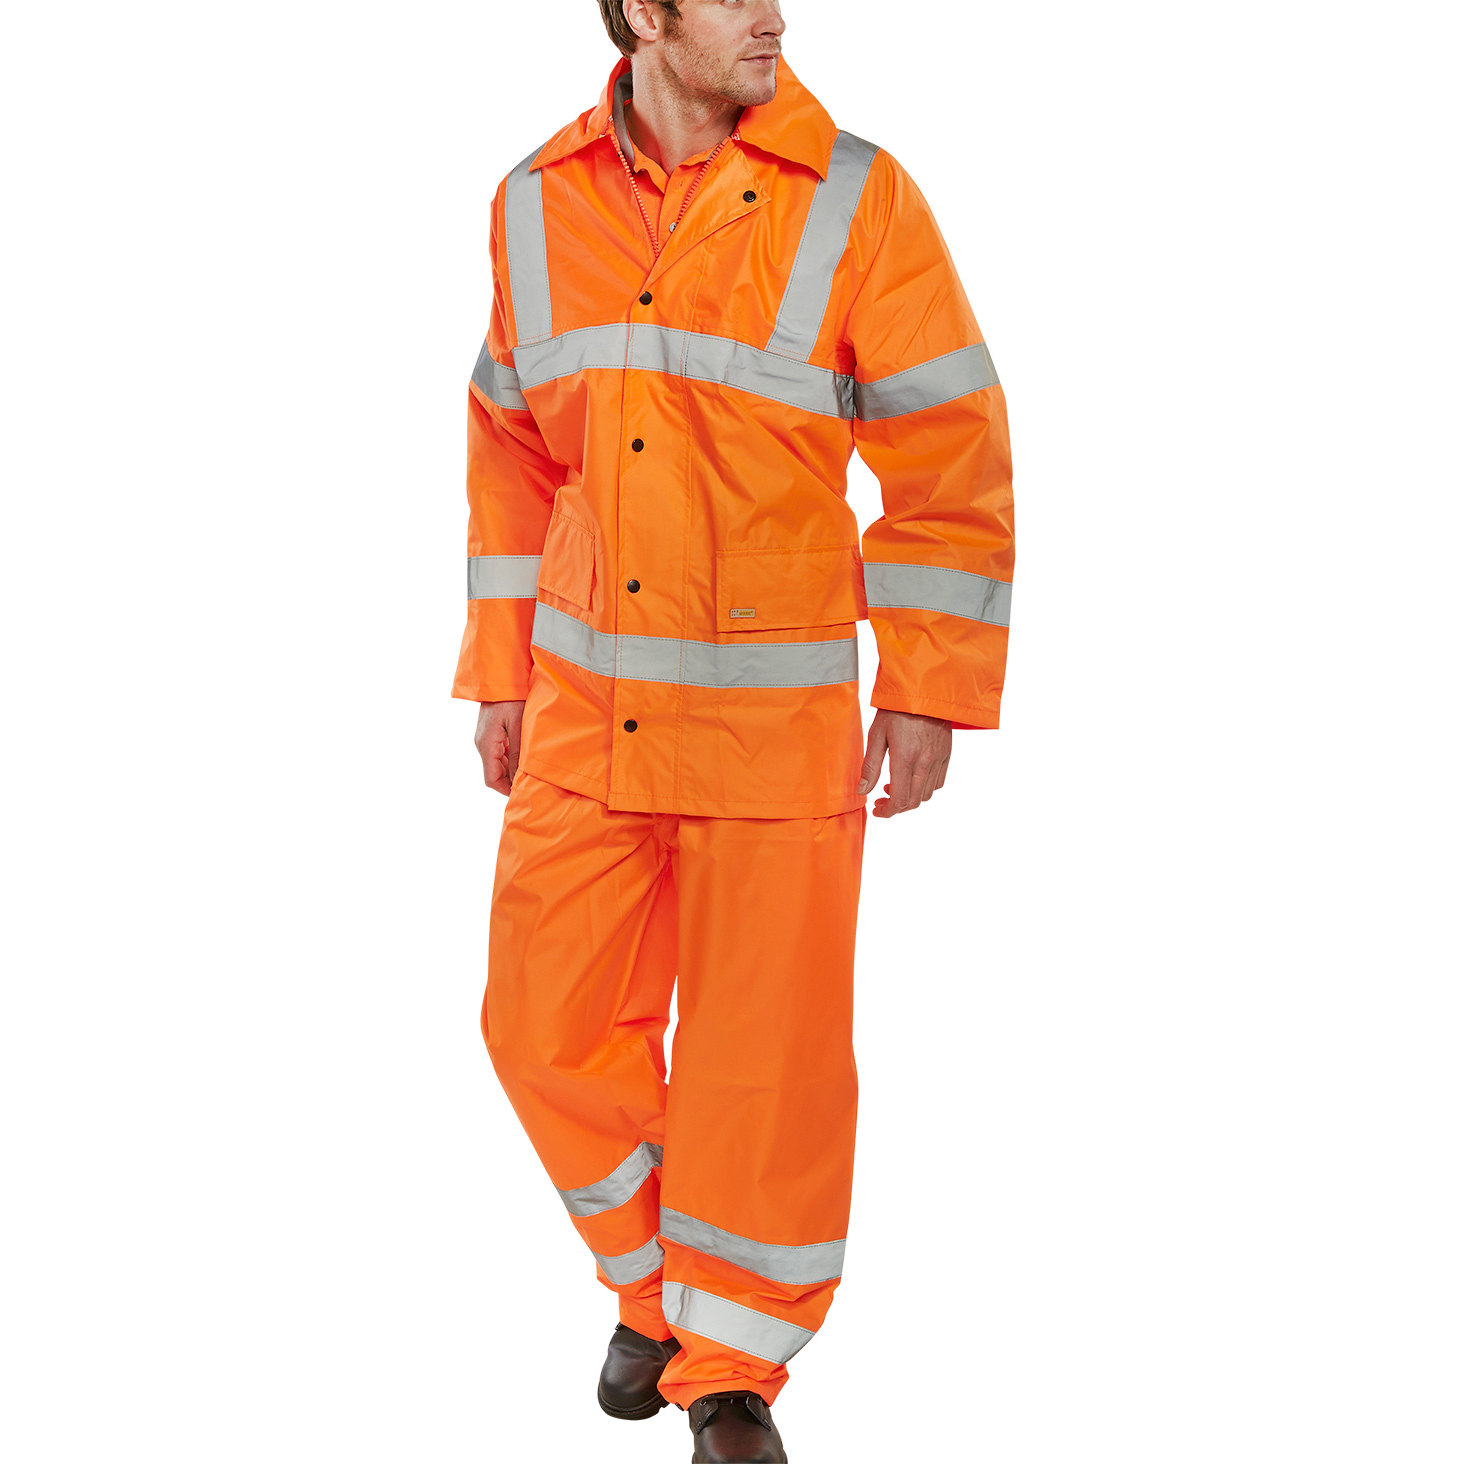 BSeen Hi-Vis L/Wt Suit Jkt/Trs EN ISO 20471 EN 343 Medium Orange Ref TS8ORM *Up to 3 Day Leadtime*